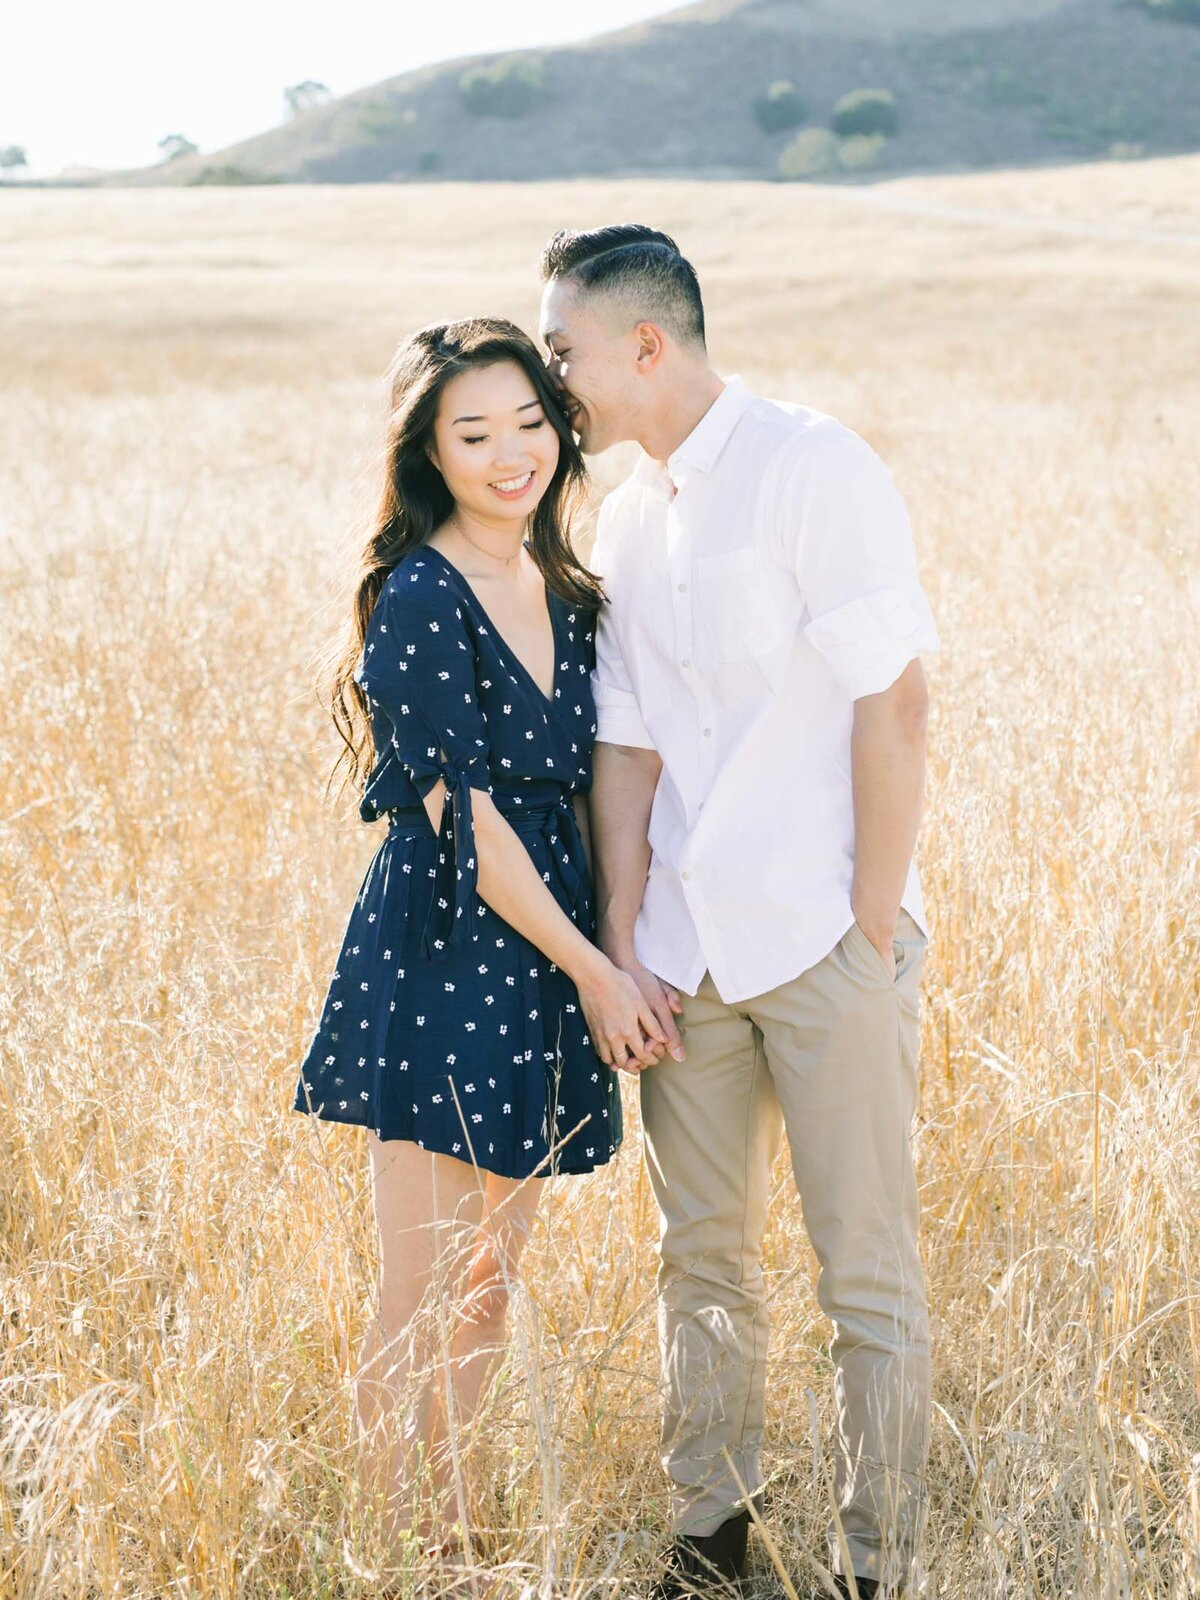 kestrel-park-engagement-photos-10